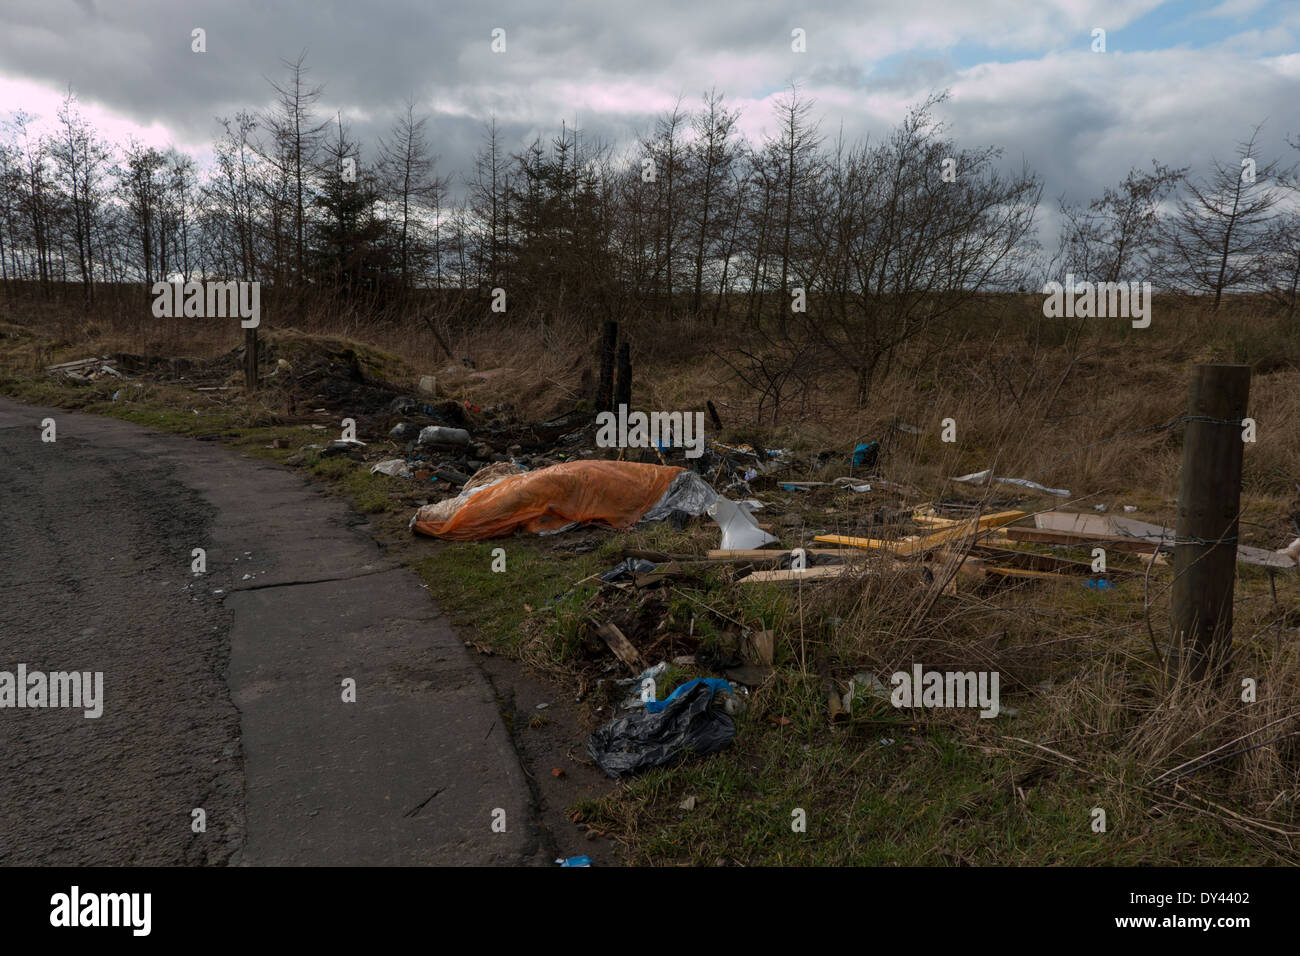 Waste discarded in the countryside. - Stock Image